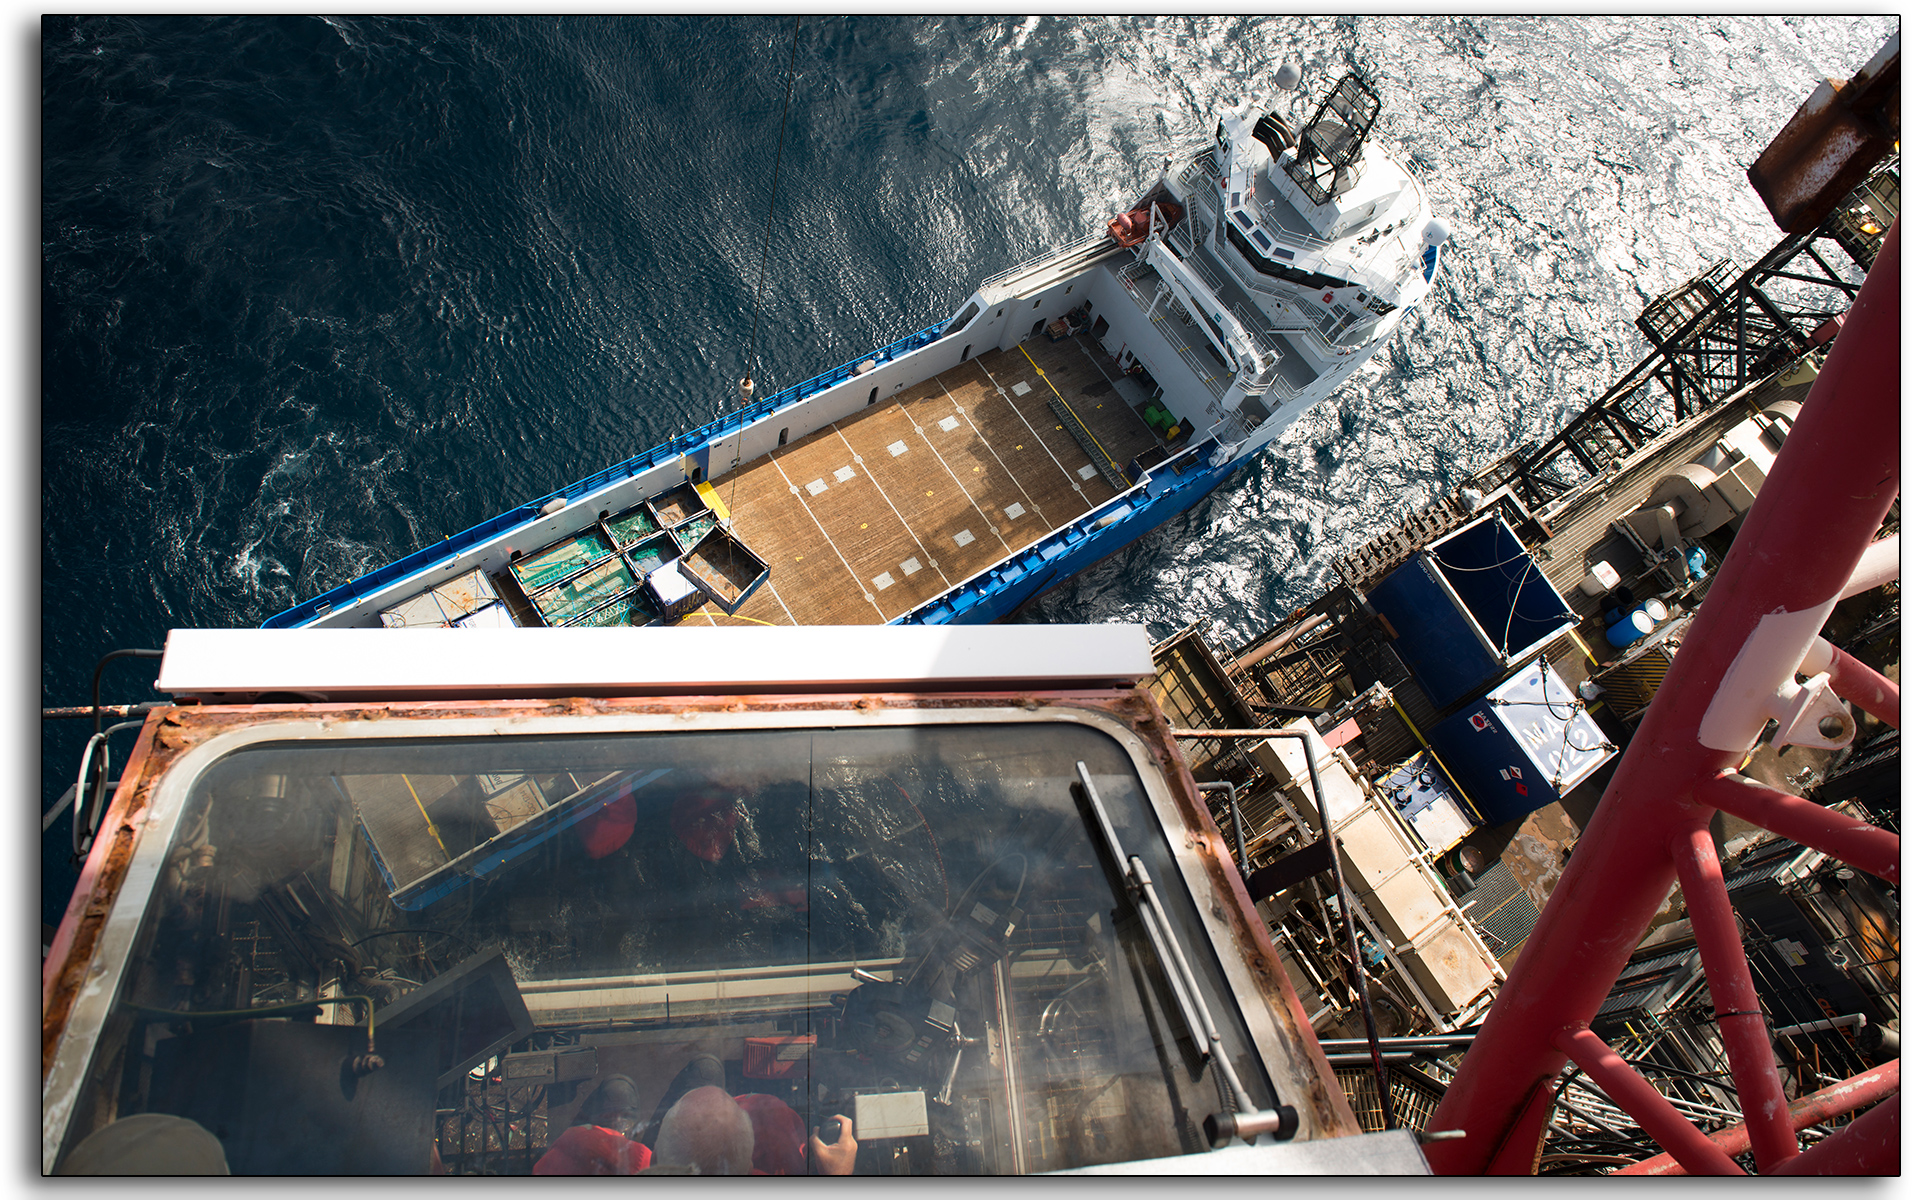 crane, offloading, backloading, supply vessel, offshore, north sea, oil and gas industry, photo by Lee Ramsden.jpg